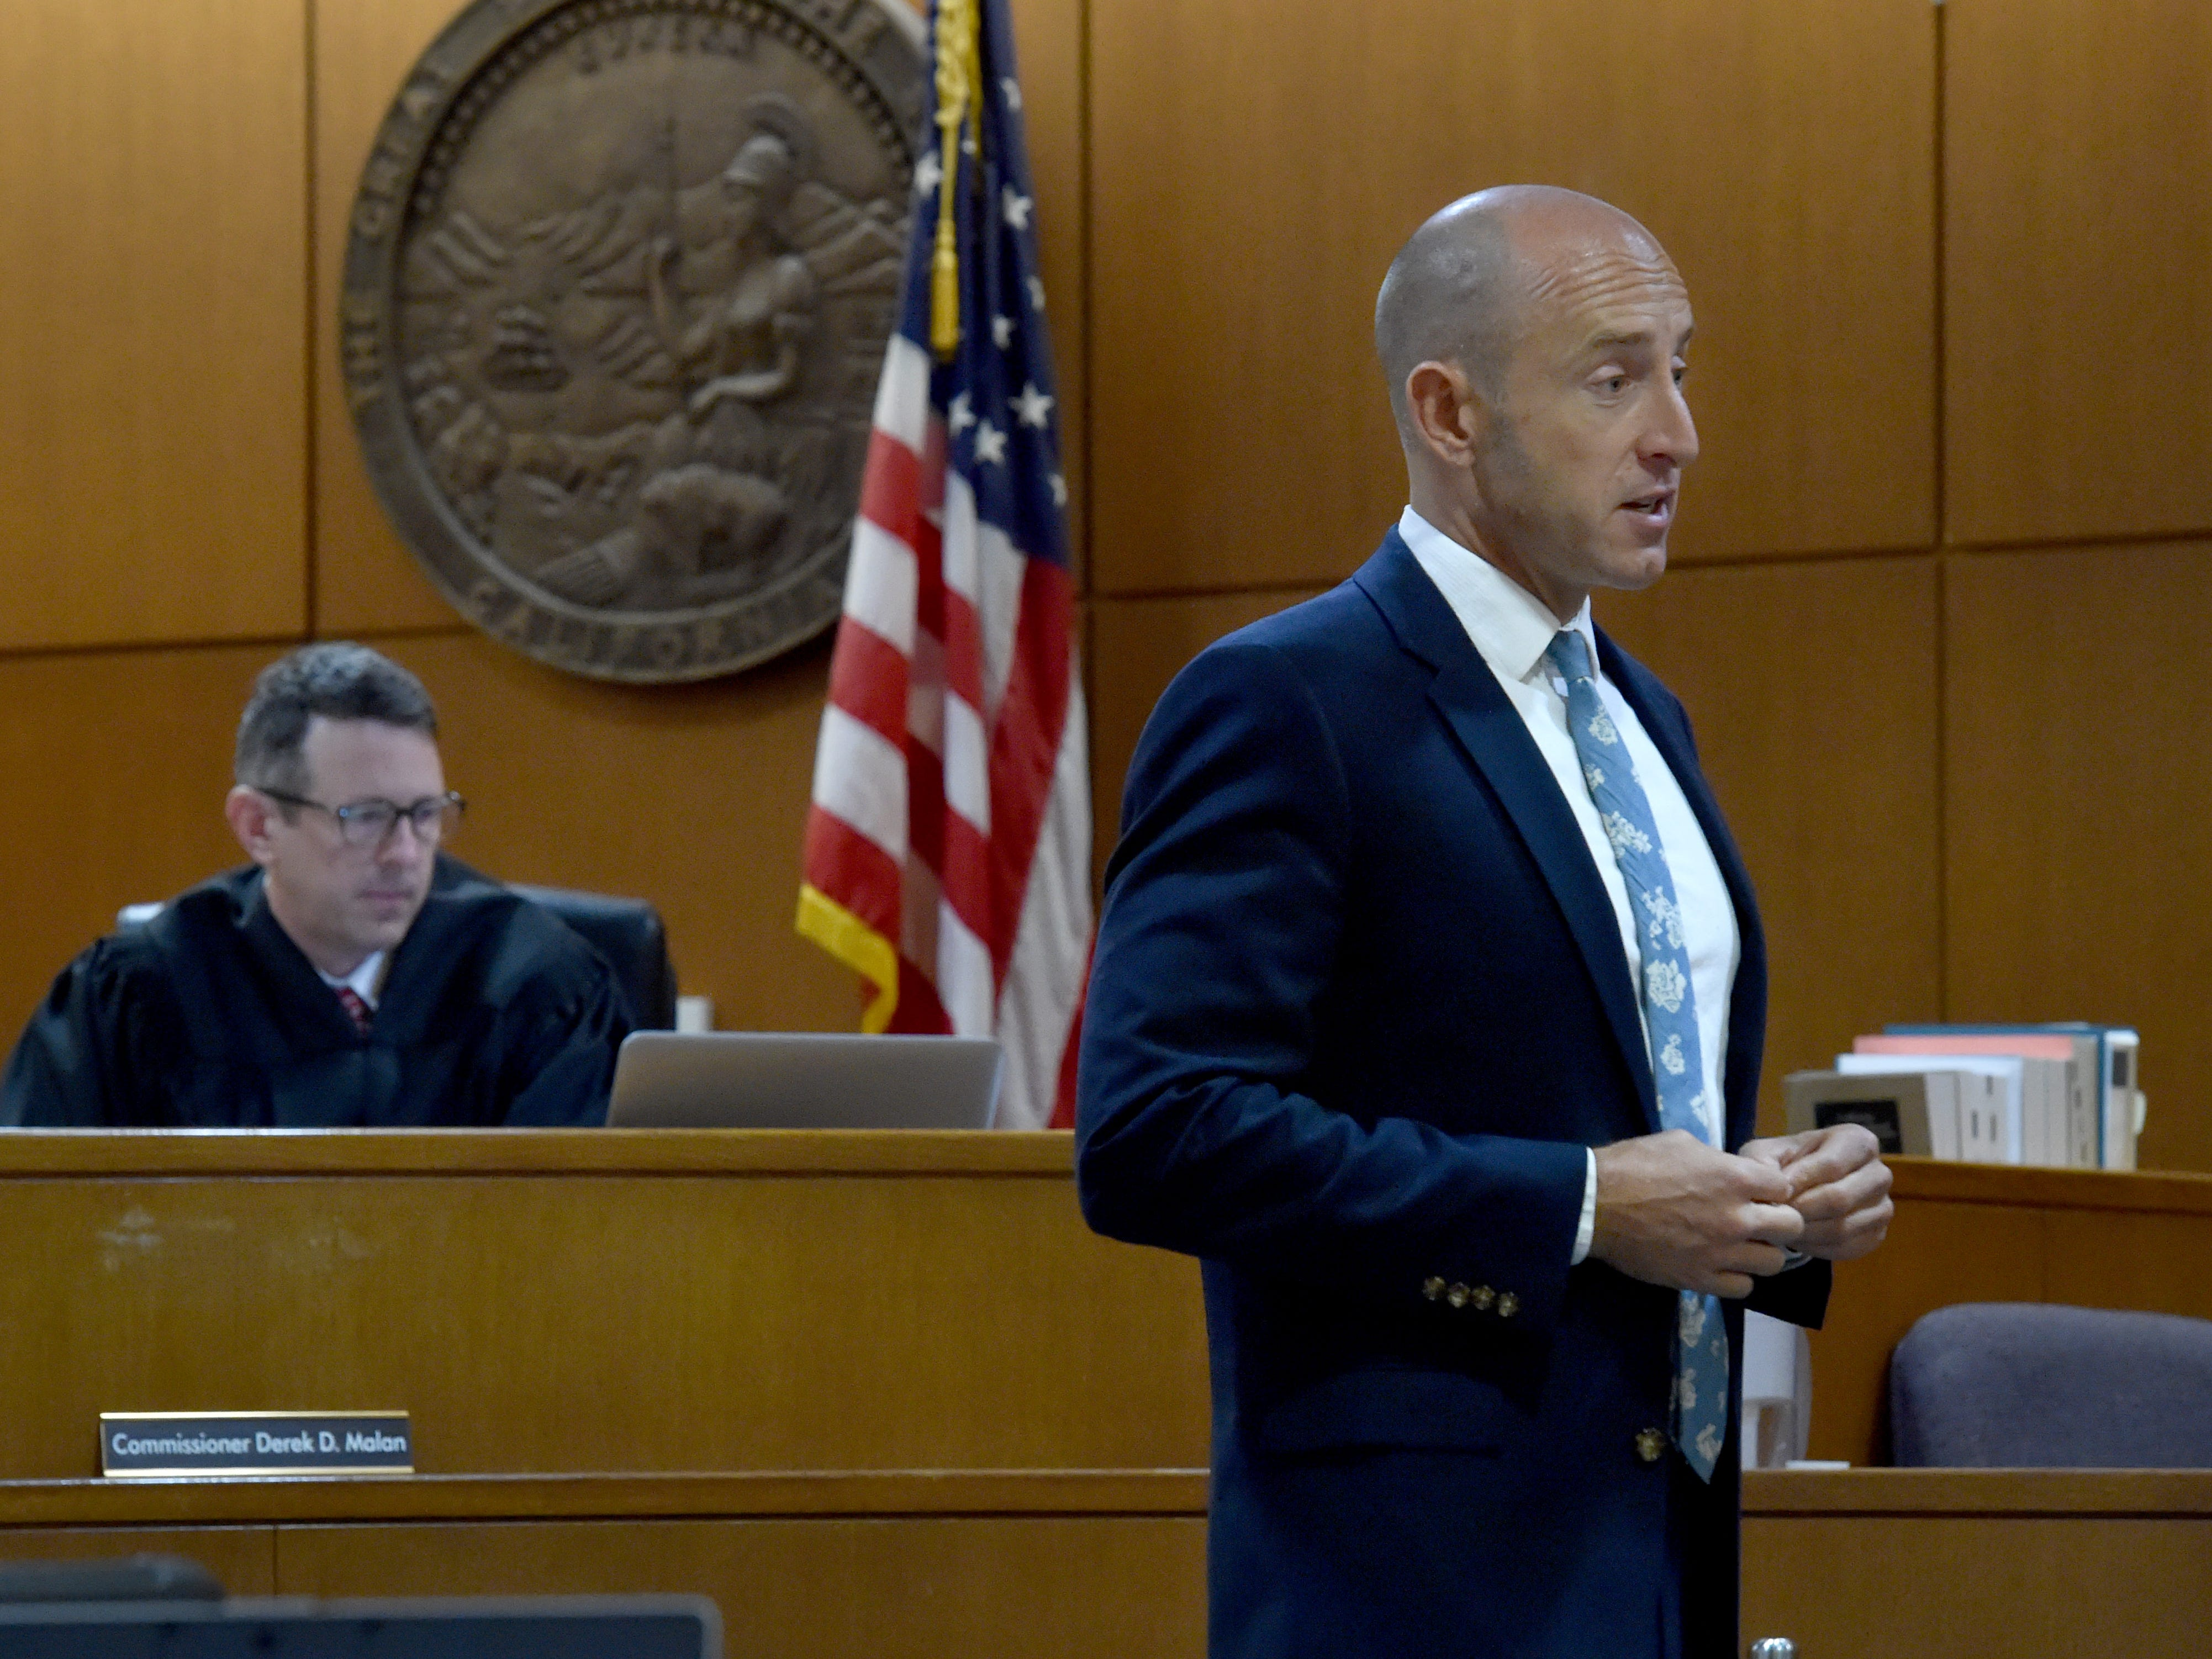 Deputy Public Defender Michael Albers  gives his opening statement in the trial of Mayra Chavez at Ventura County Superior Court on Thursday. Chavez has pleaded not guilty to second-degree murder charges in the death of her 3-year-old daughter Kimberly Lopez.